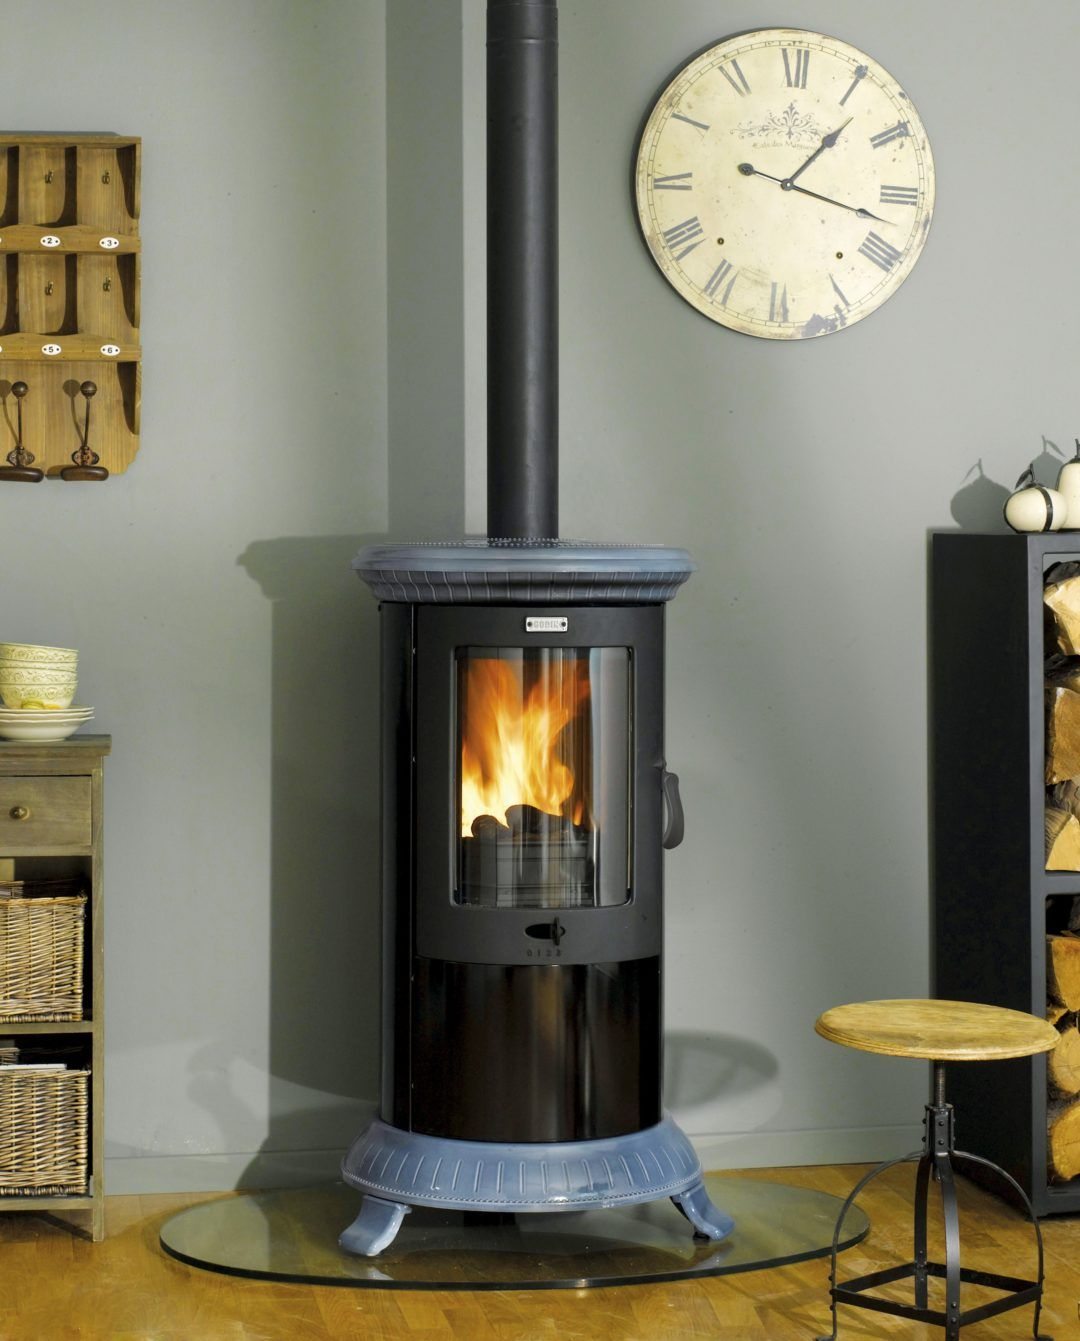 Godin Wood Burner Stove - Petit Godin 377111 6 5kw | Wood